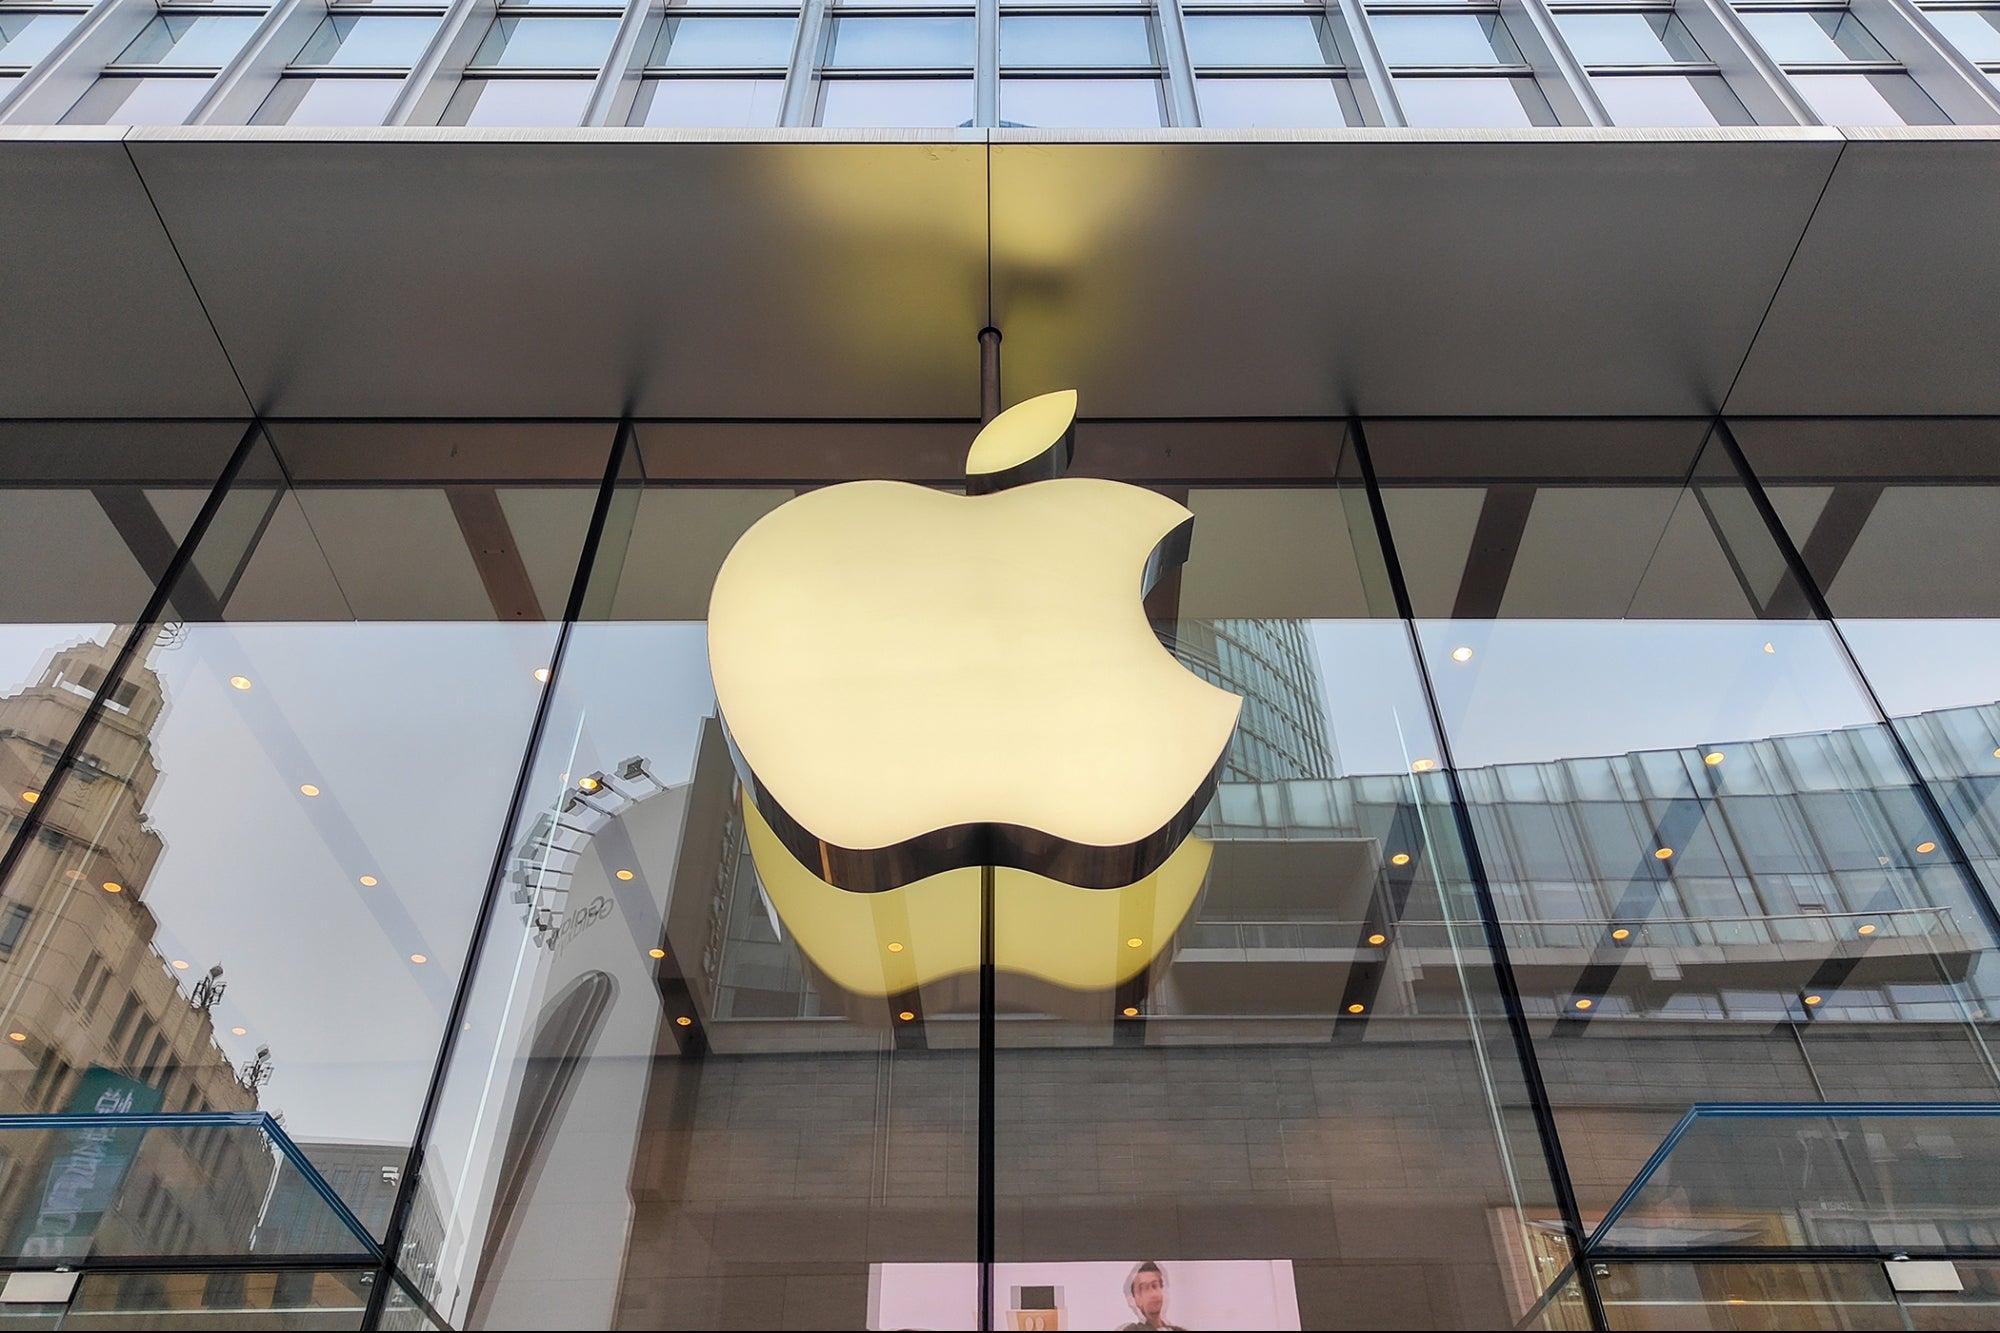 Apple Announces $30 Million Investment Towards Racial Equity Focusing on Hispanic Inclusion